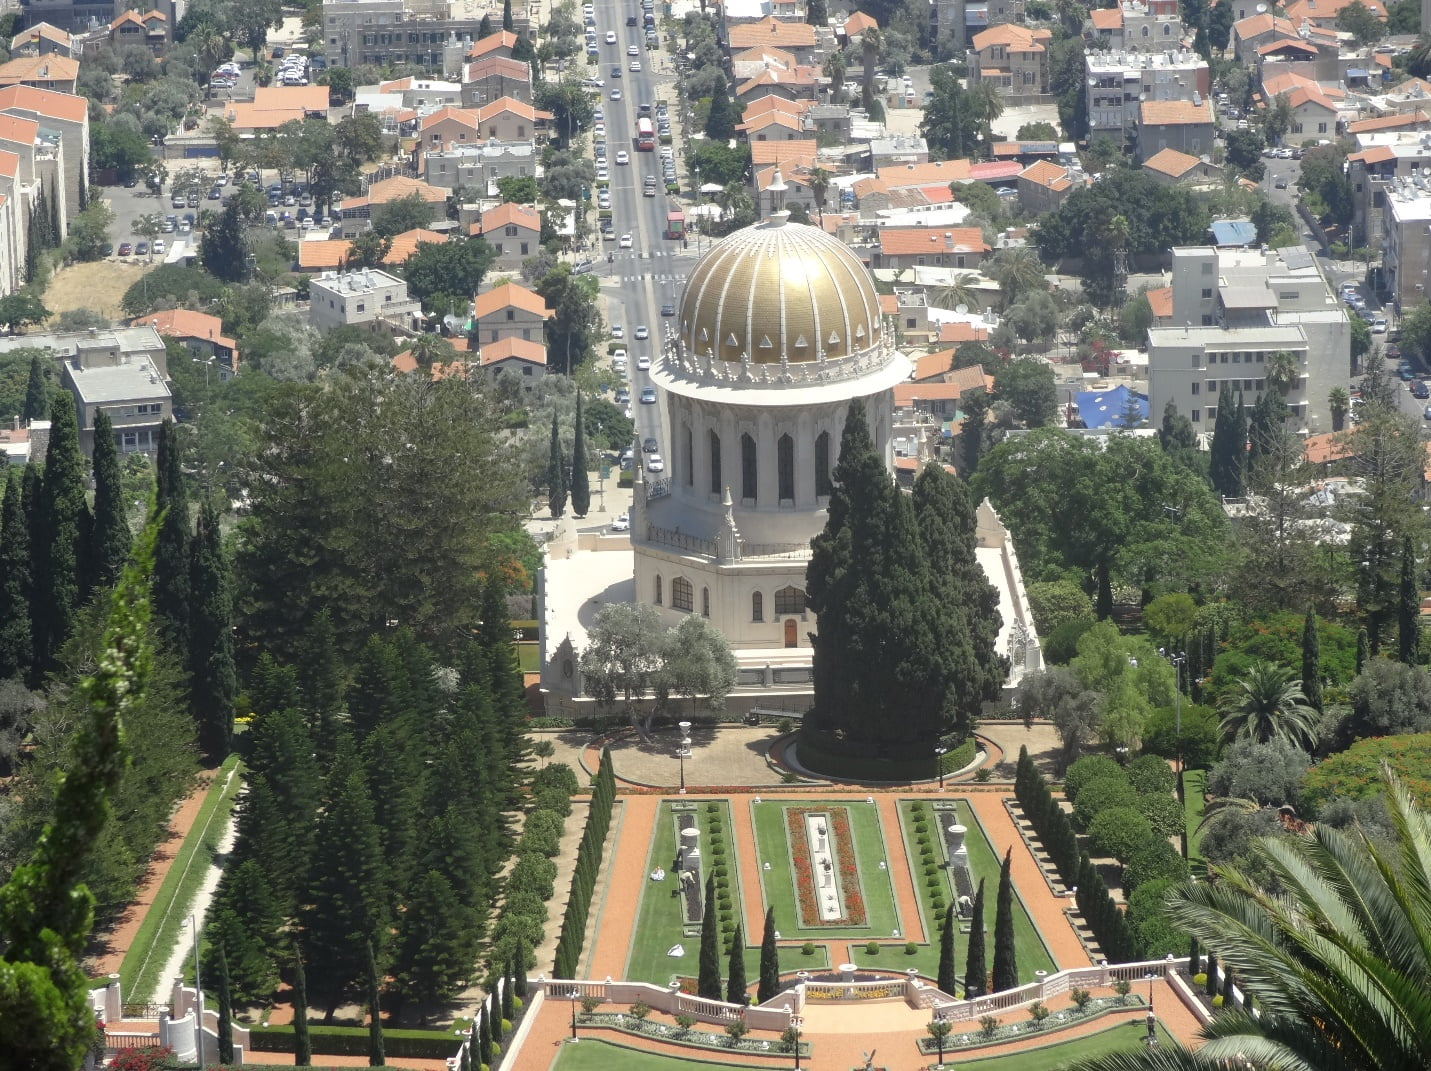 The Bahai temple in my hometown - Haifa, Israel